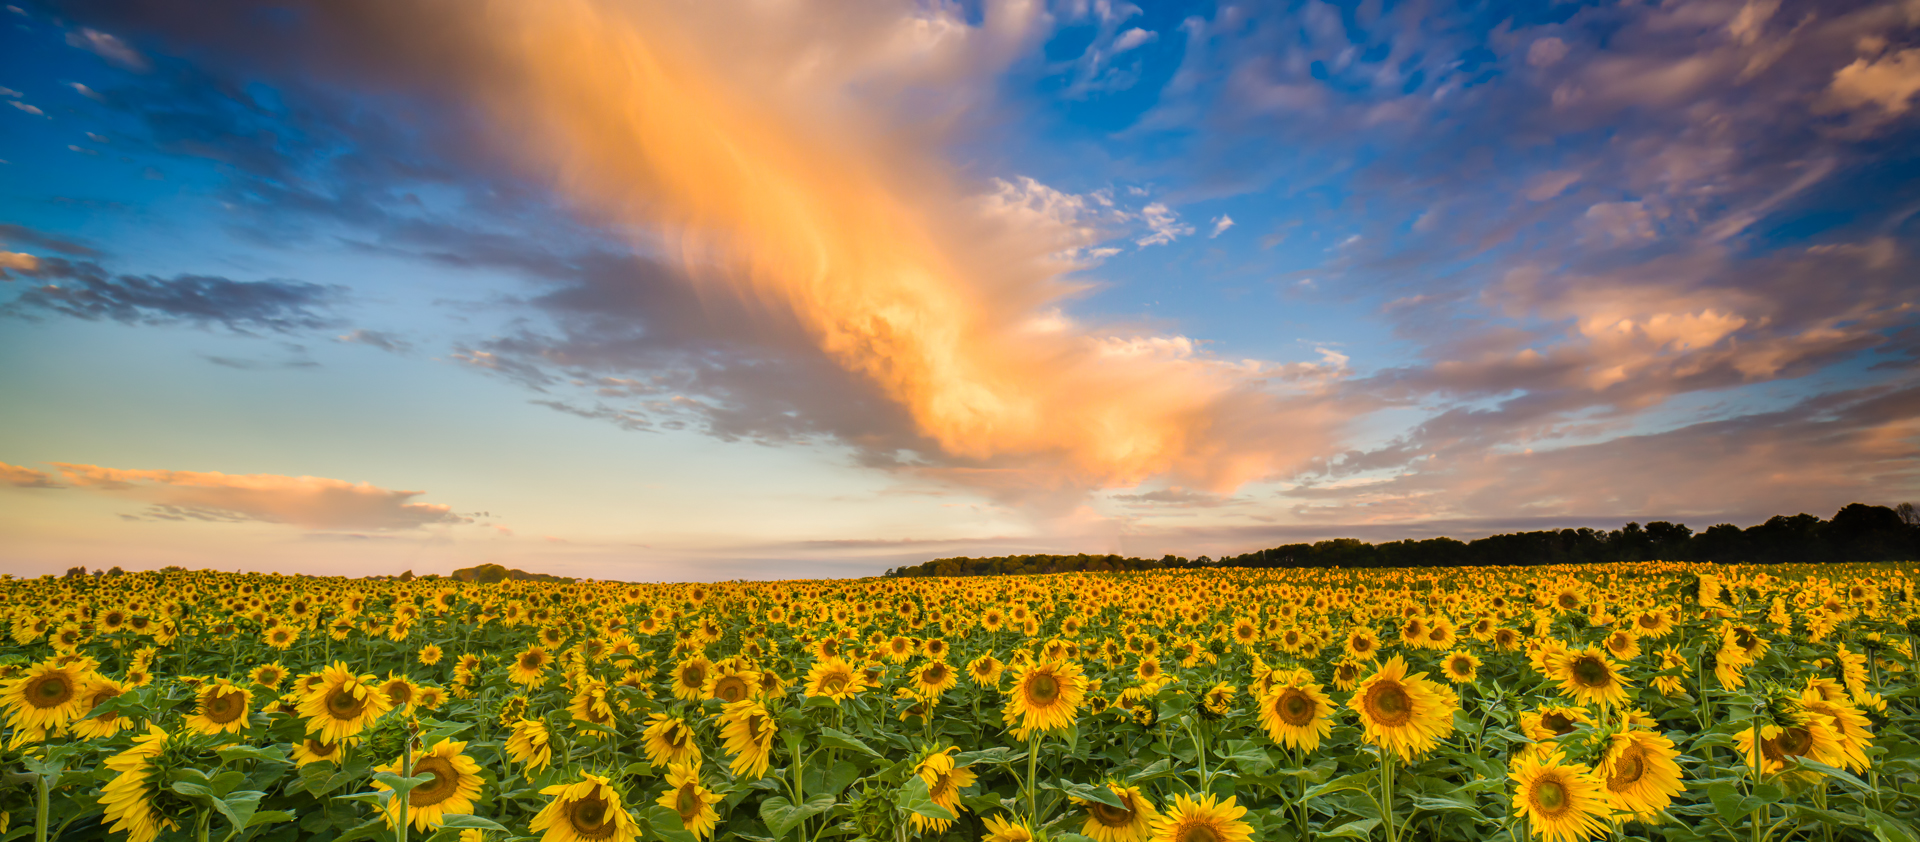 traverse-city-sunflowers-2013